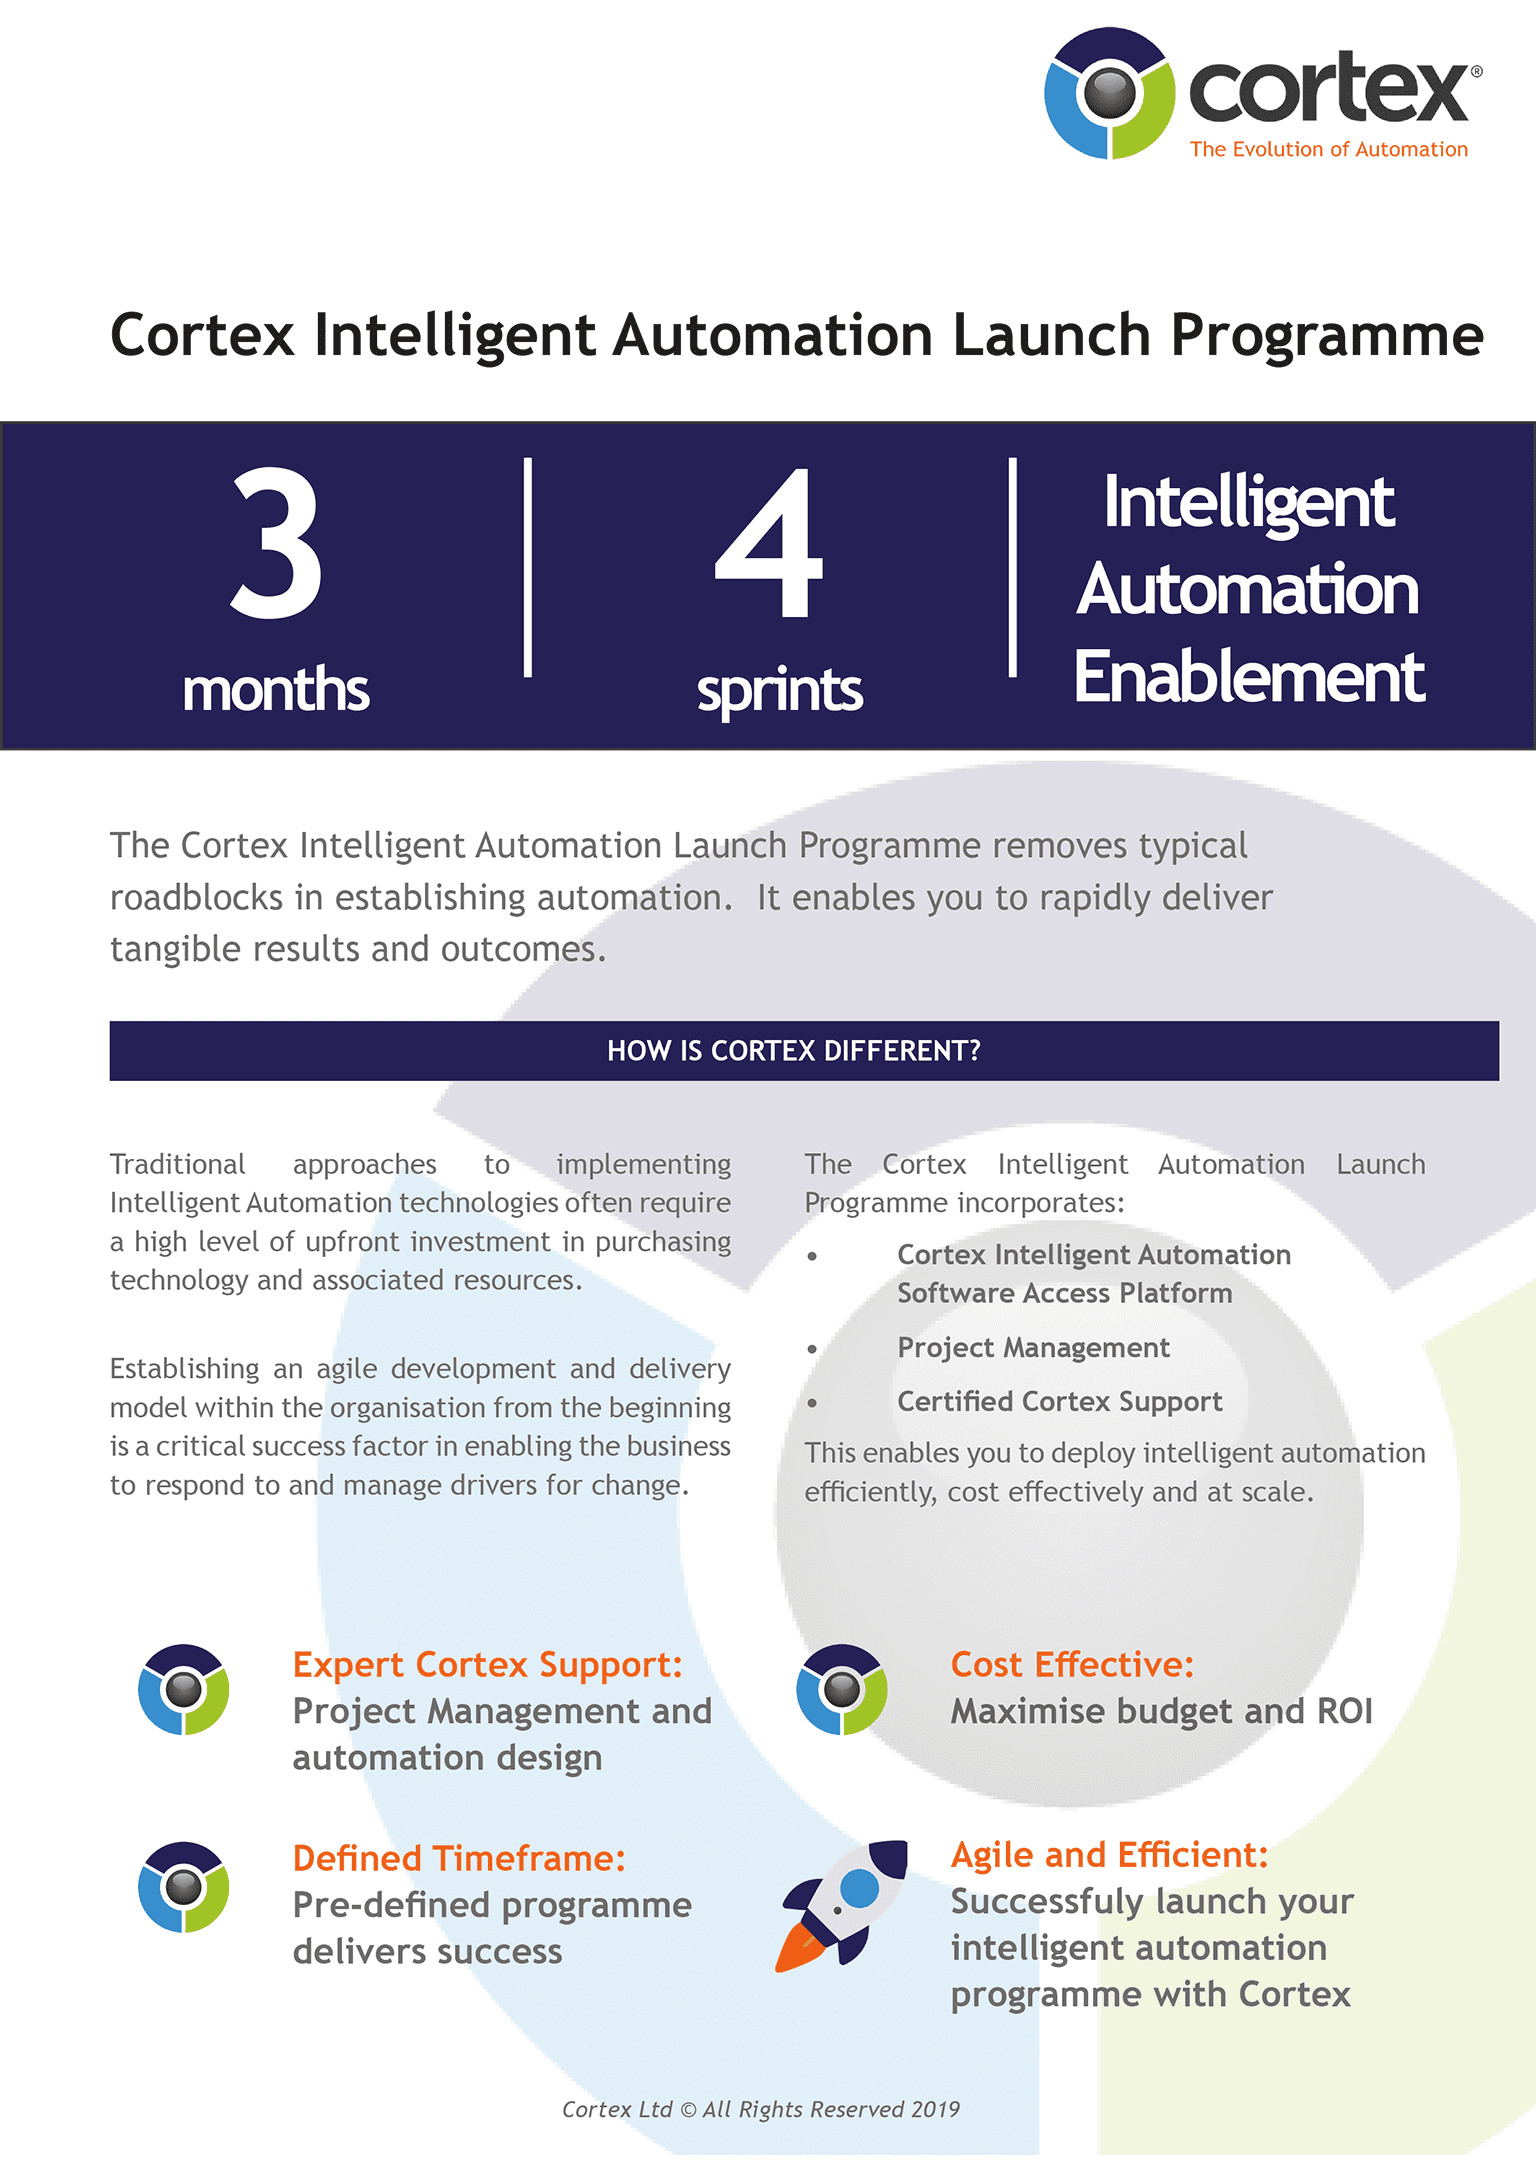 Cortex Intelligent Automation Launch Programme